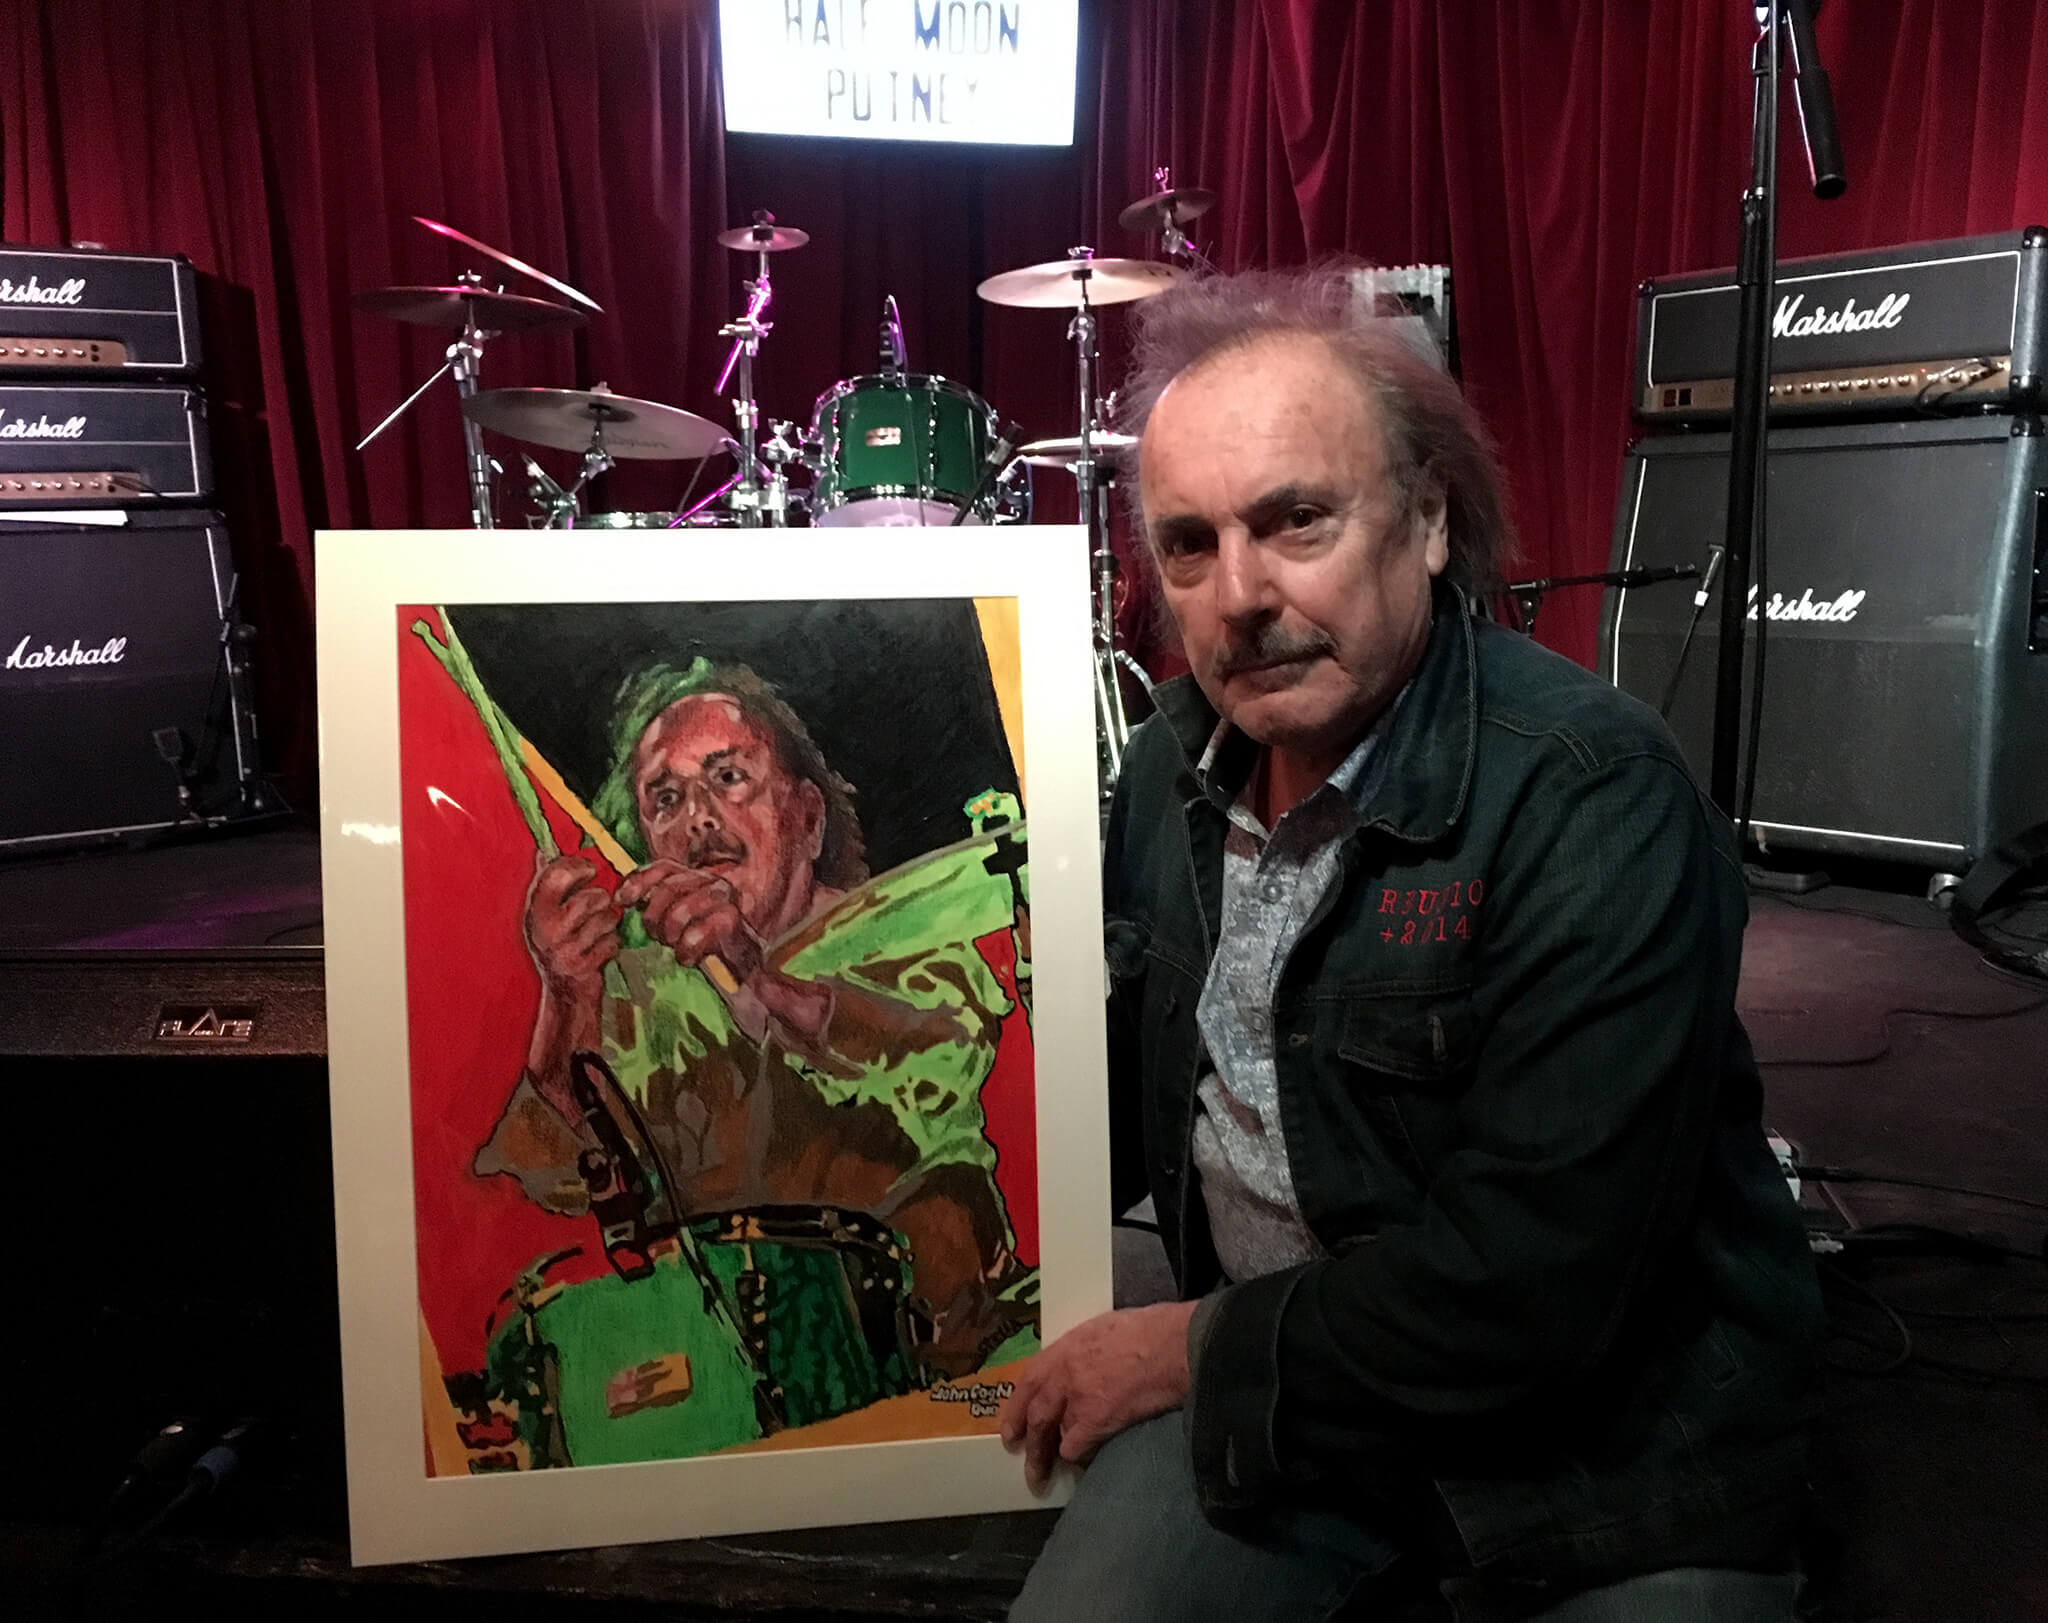 John Coghlan of John Coghlan's Quo with Stella Tooth's drawn portrait of him at the Half Moon Putney.